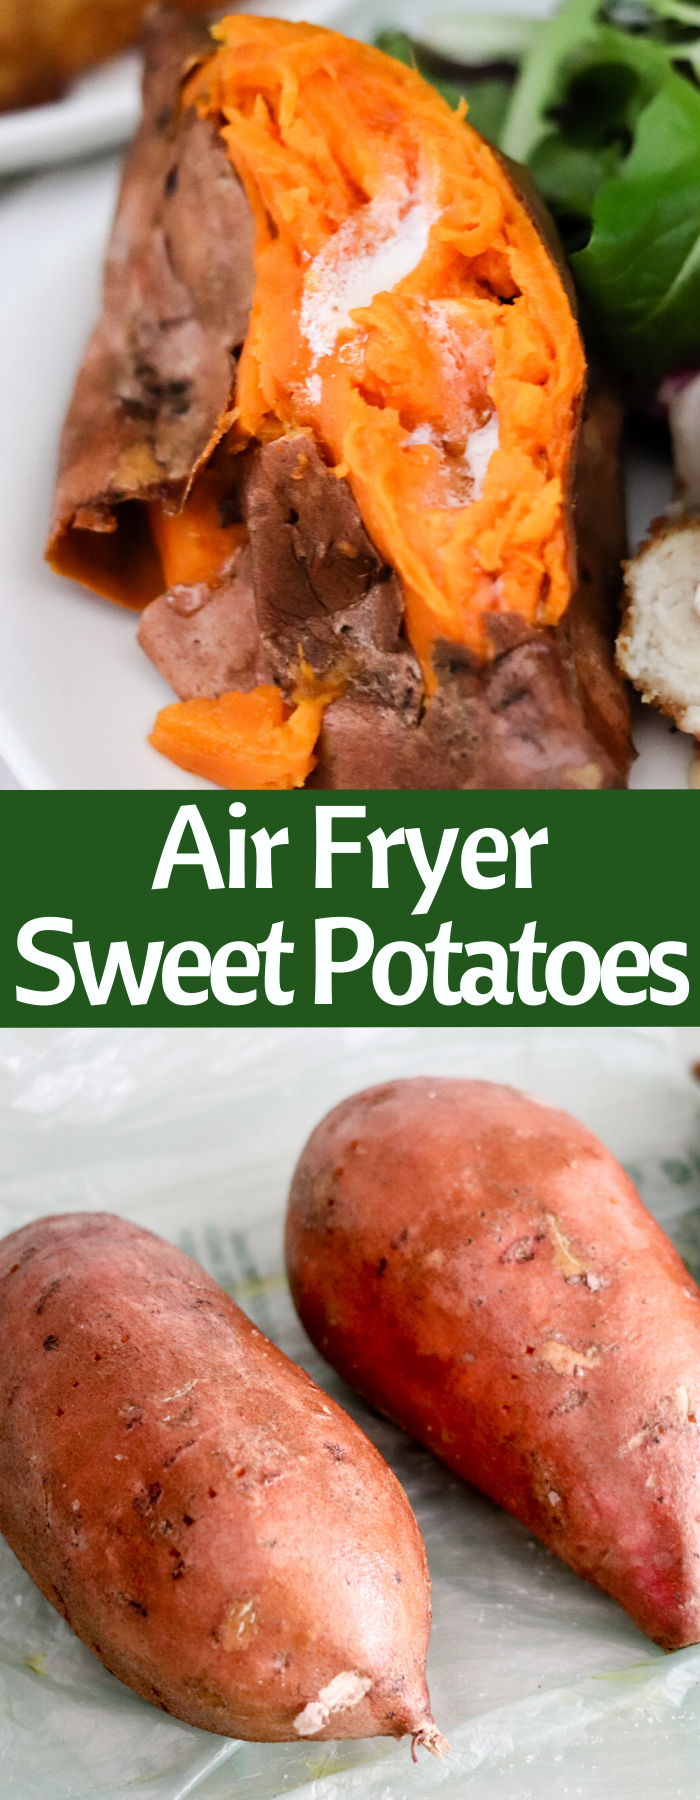 Easy Air Fryer Sweet Potatoes are the perfect side dish. Pair with Barber Foods® Cordon Bleu Stuffed Chicken Breasts and you have a simple delicious dinner!